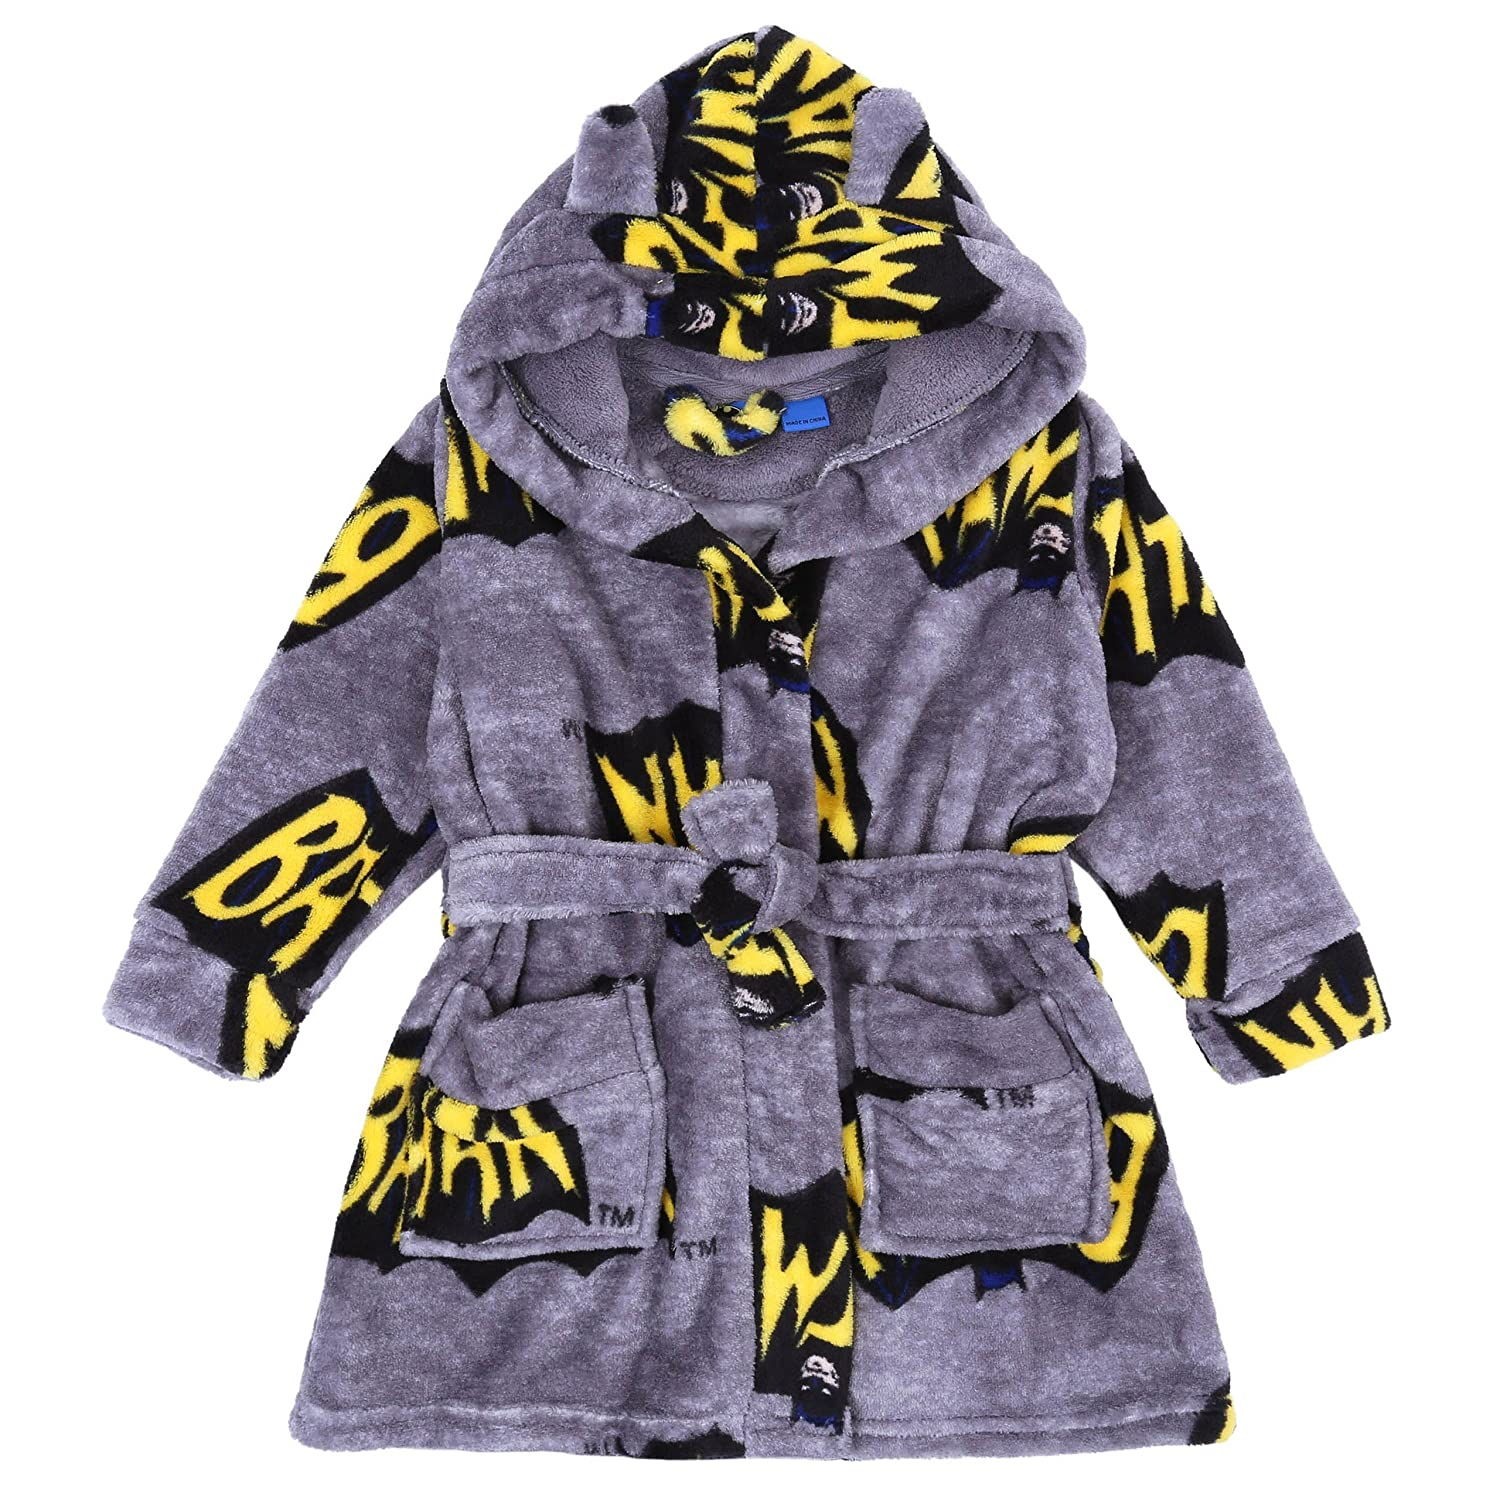 Batman -:- DC COMICS Soft Fleece Grey, Hooded Dressing Gown, Bathrobe For Boys